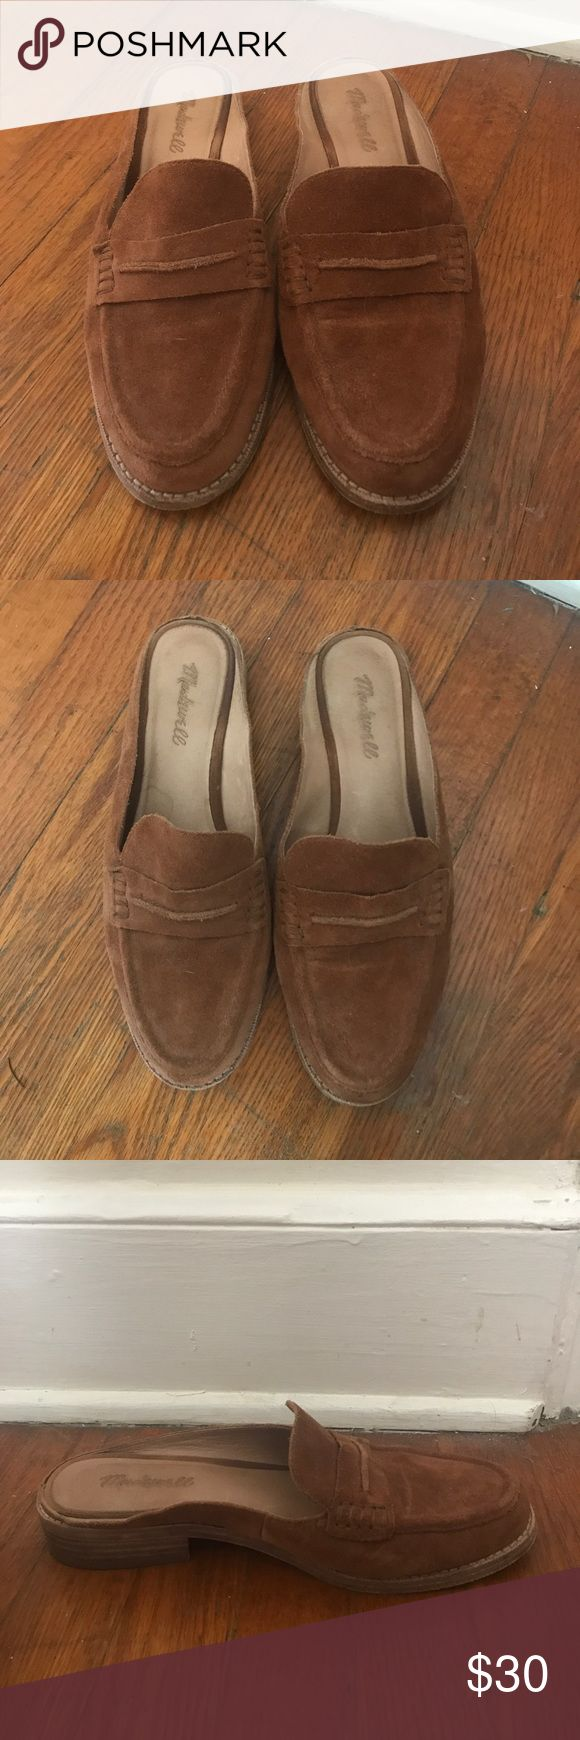 Madewell Suede Loafer Miles 👞 Brown Suede Loafer Miles from Madewell. Decently worn but outside appearance looks basically perfect. The sole is stinking at the toes inside just a tad, I tried to show it pictured. Price is pretty firm but a reasonable offer will be considered! Madewell Shoes Mules & Clogs